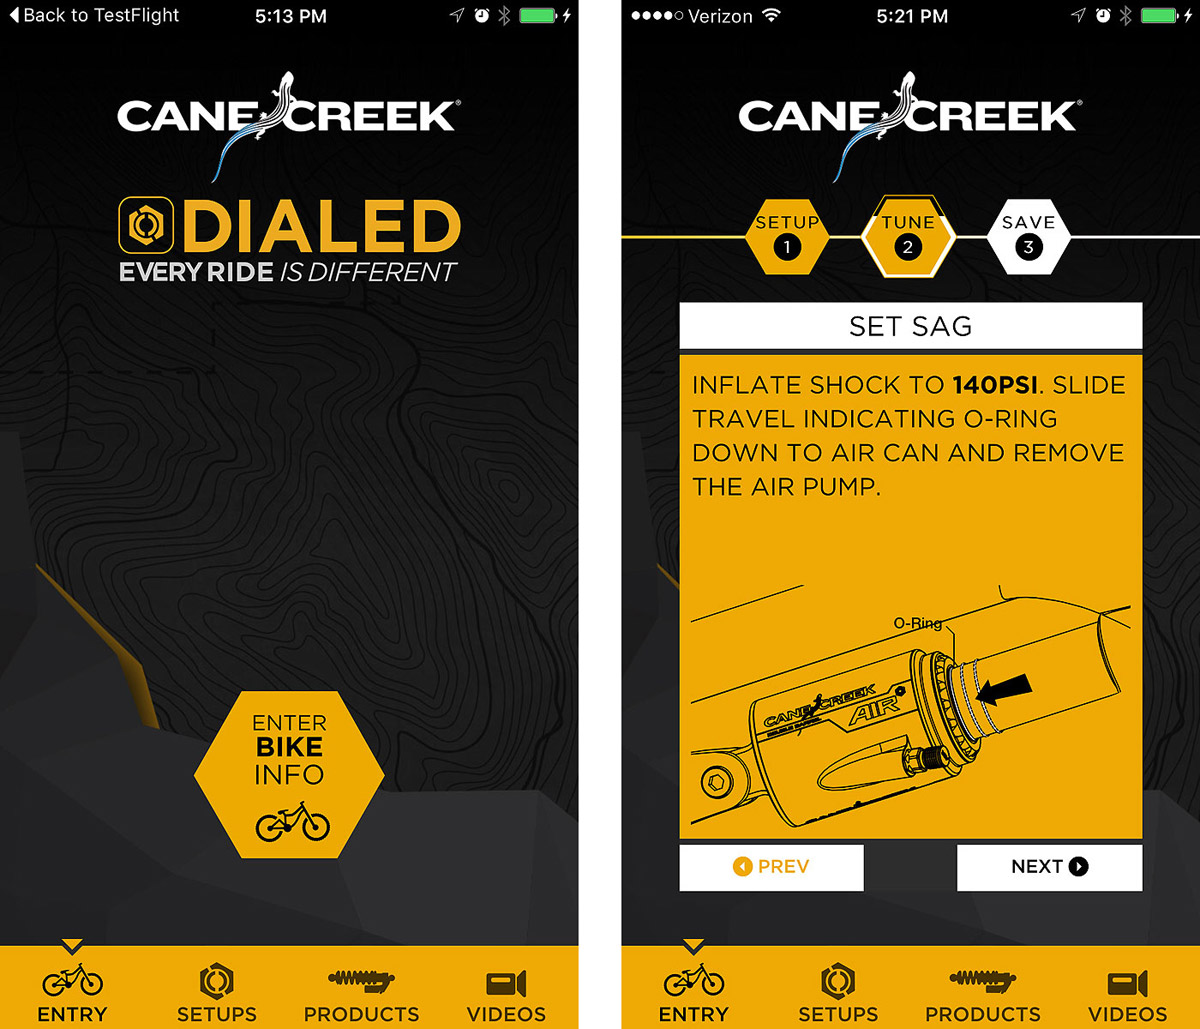 To set up a bike, DIALED connects to the Cane Creek suspension database of over 6000 full-suspension mountain bikes and accesses shock configuration and custom base tune settings.